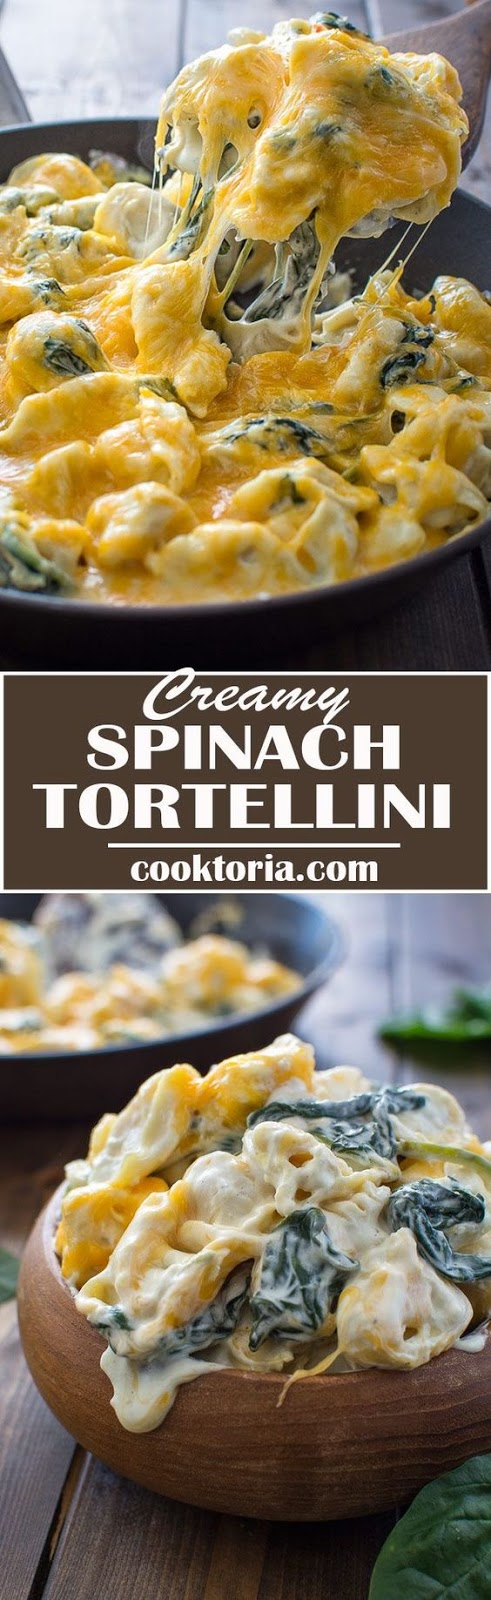 ★★★★☆ 2671 ratings    | CREAMY SPINACH TORTELLINI #CREAMY #SPINACH #TORTELLINI #VEGETABLE #DELICIOUS